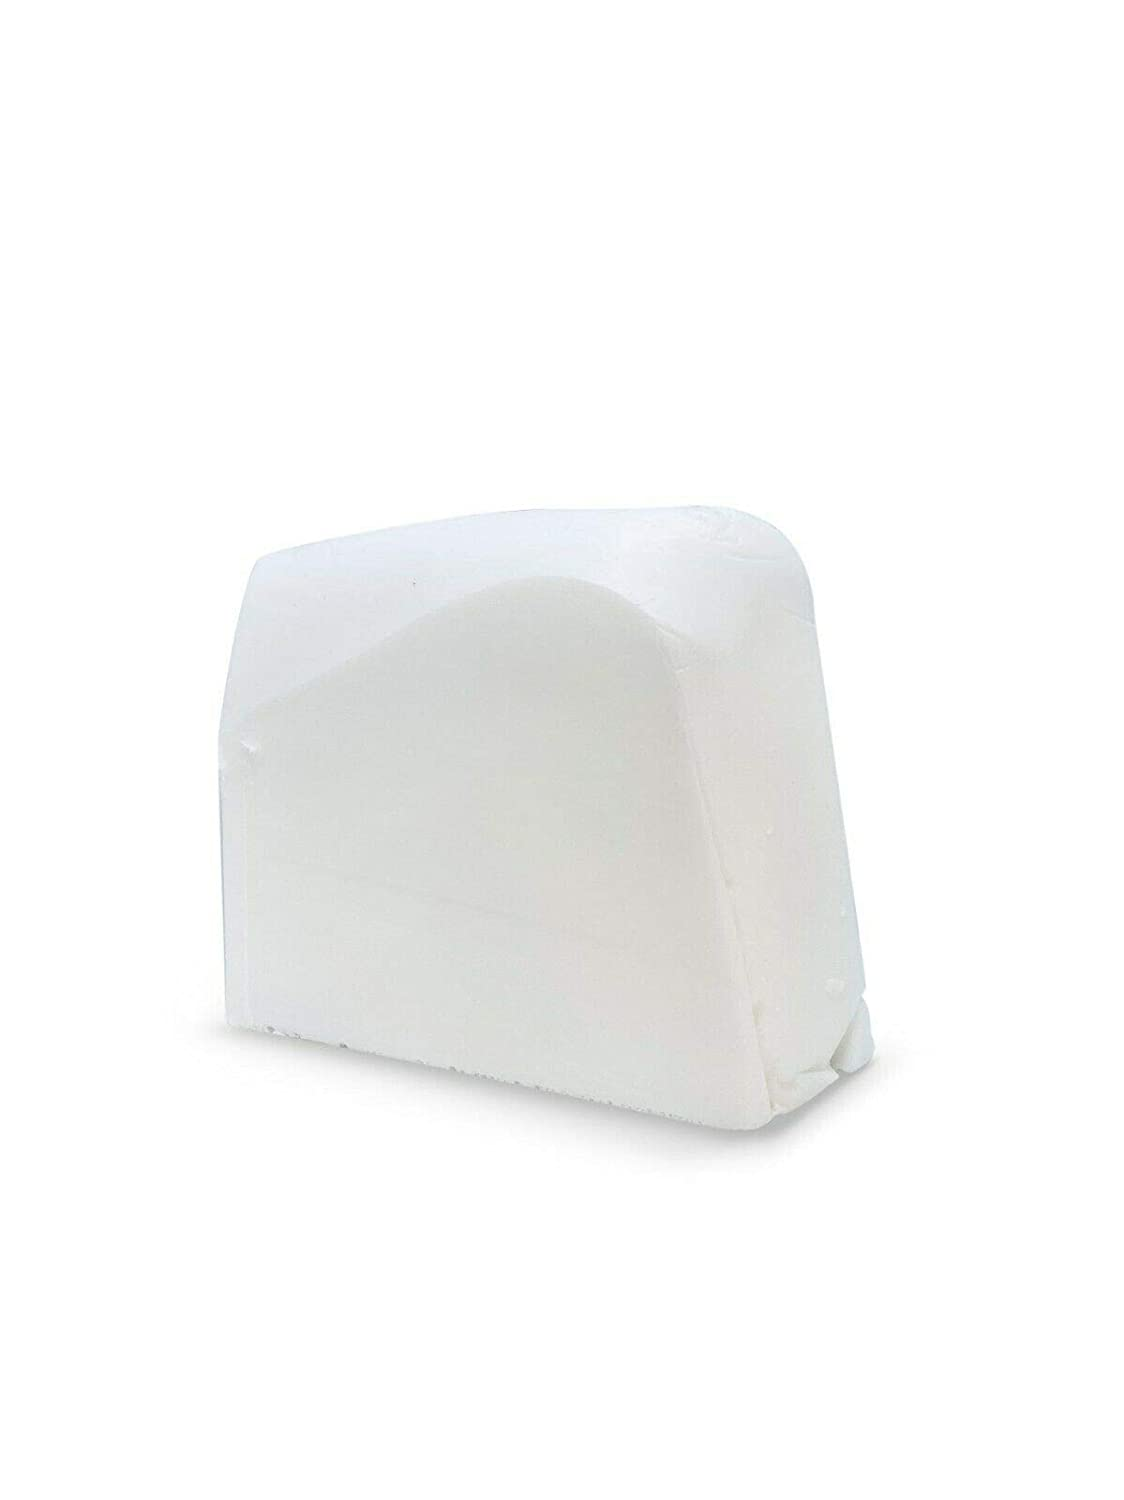 WHITE GLYCERIN MELT and POUR SOAP 25 BASE LBS TO shop lowest price 2 ORGANIC